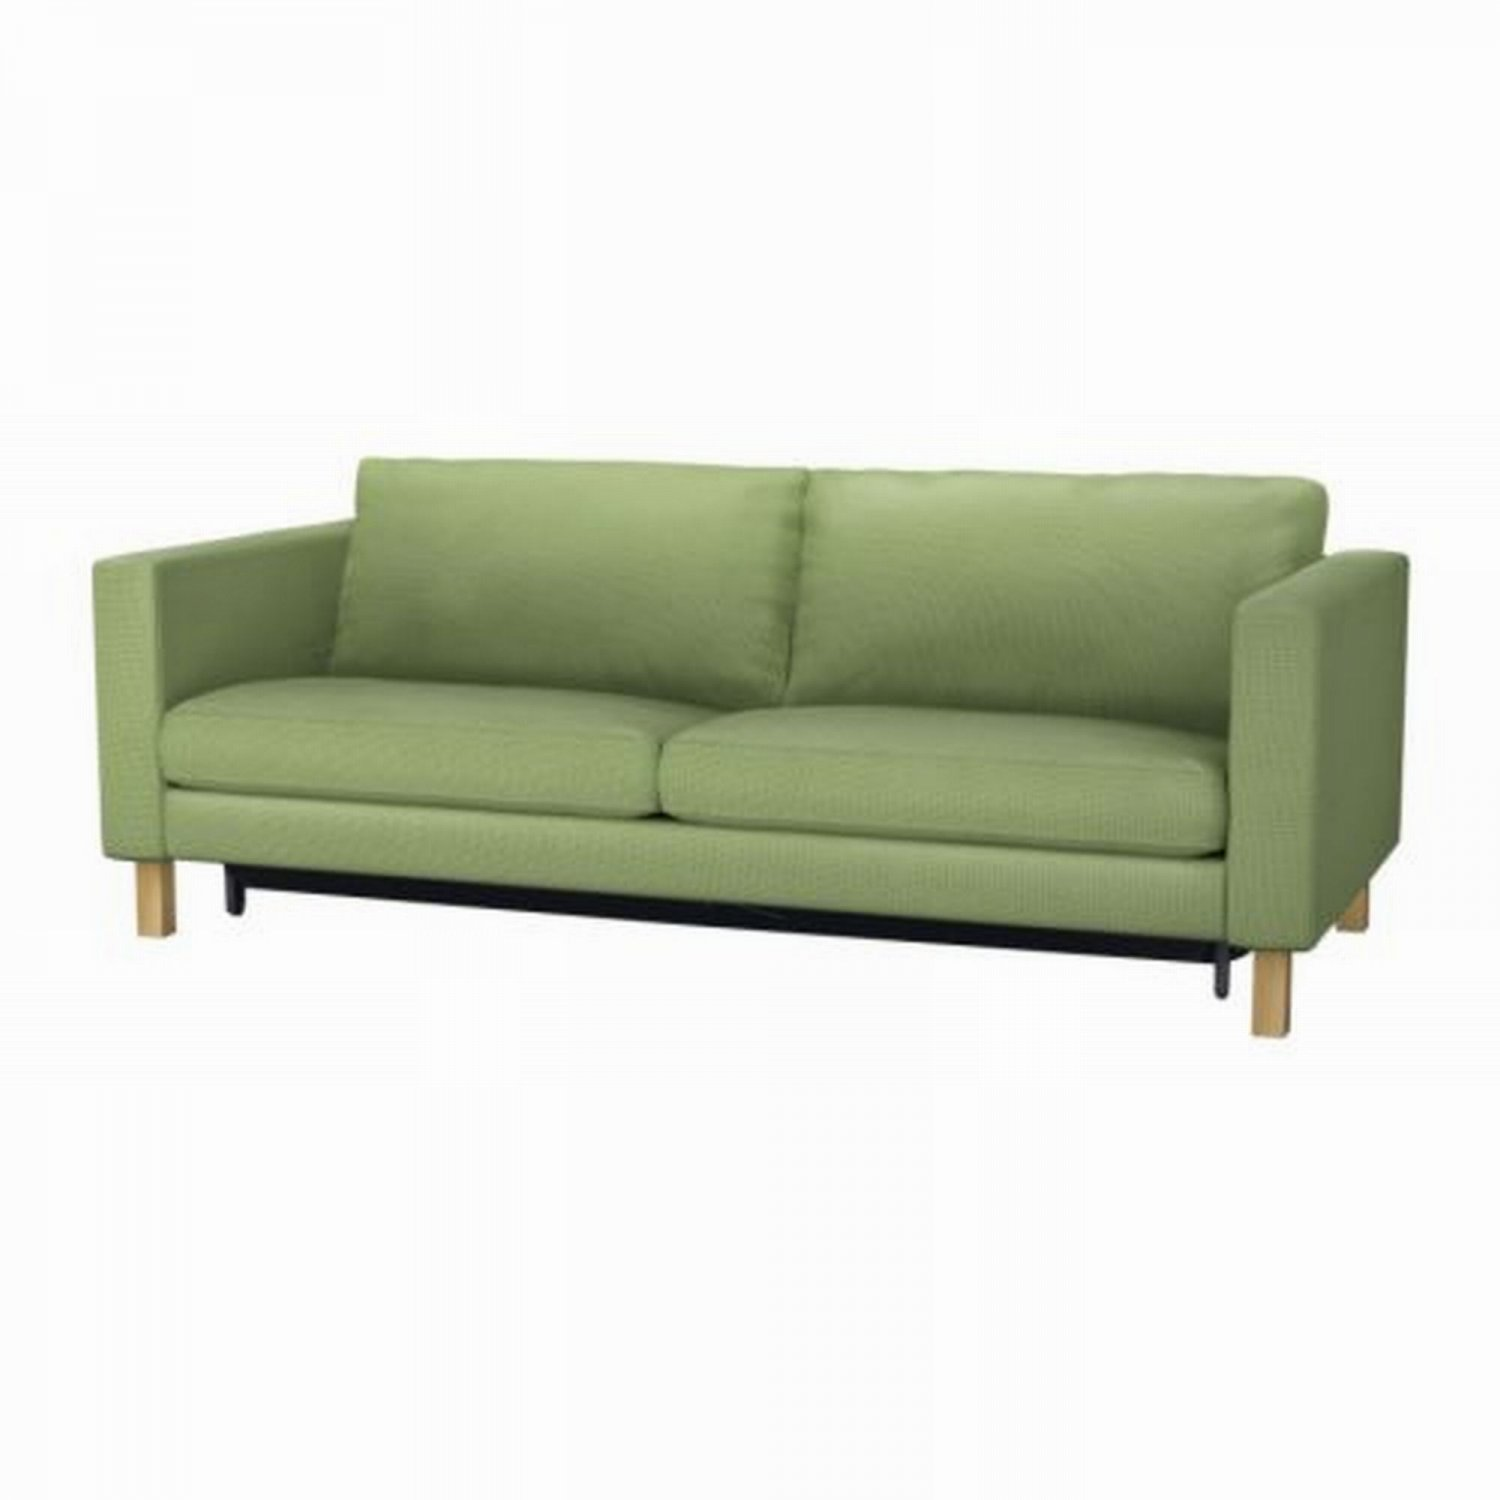 Ikea karlstad sofa bed sofabed slipcover cover korndal green Loveseat futon cover